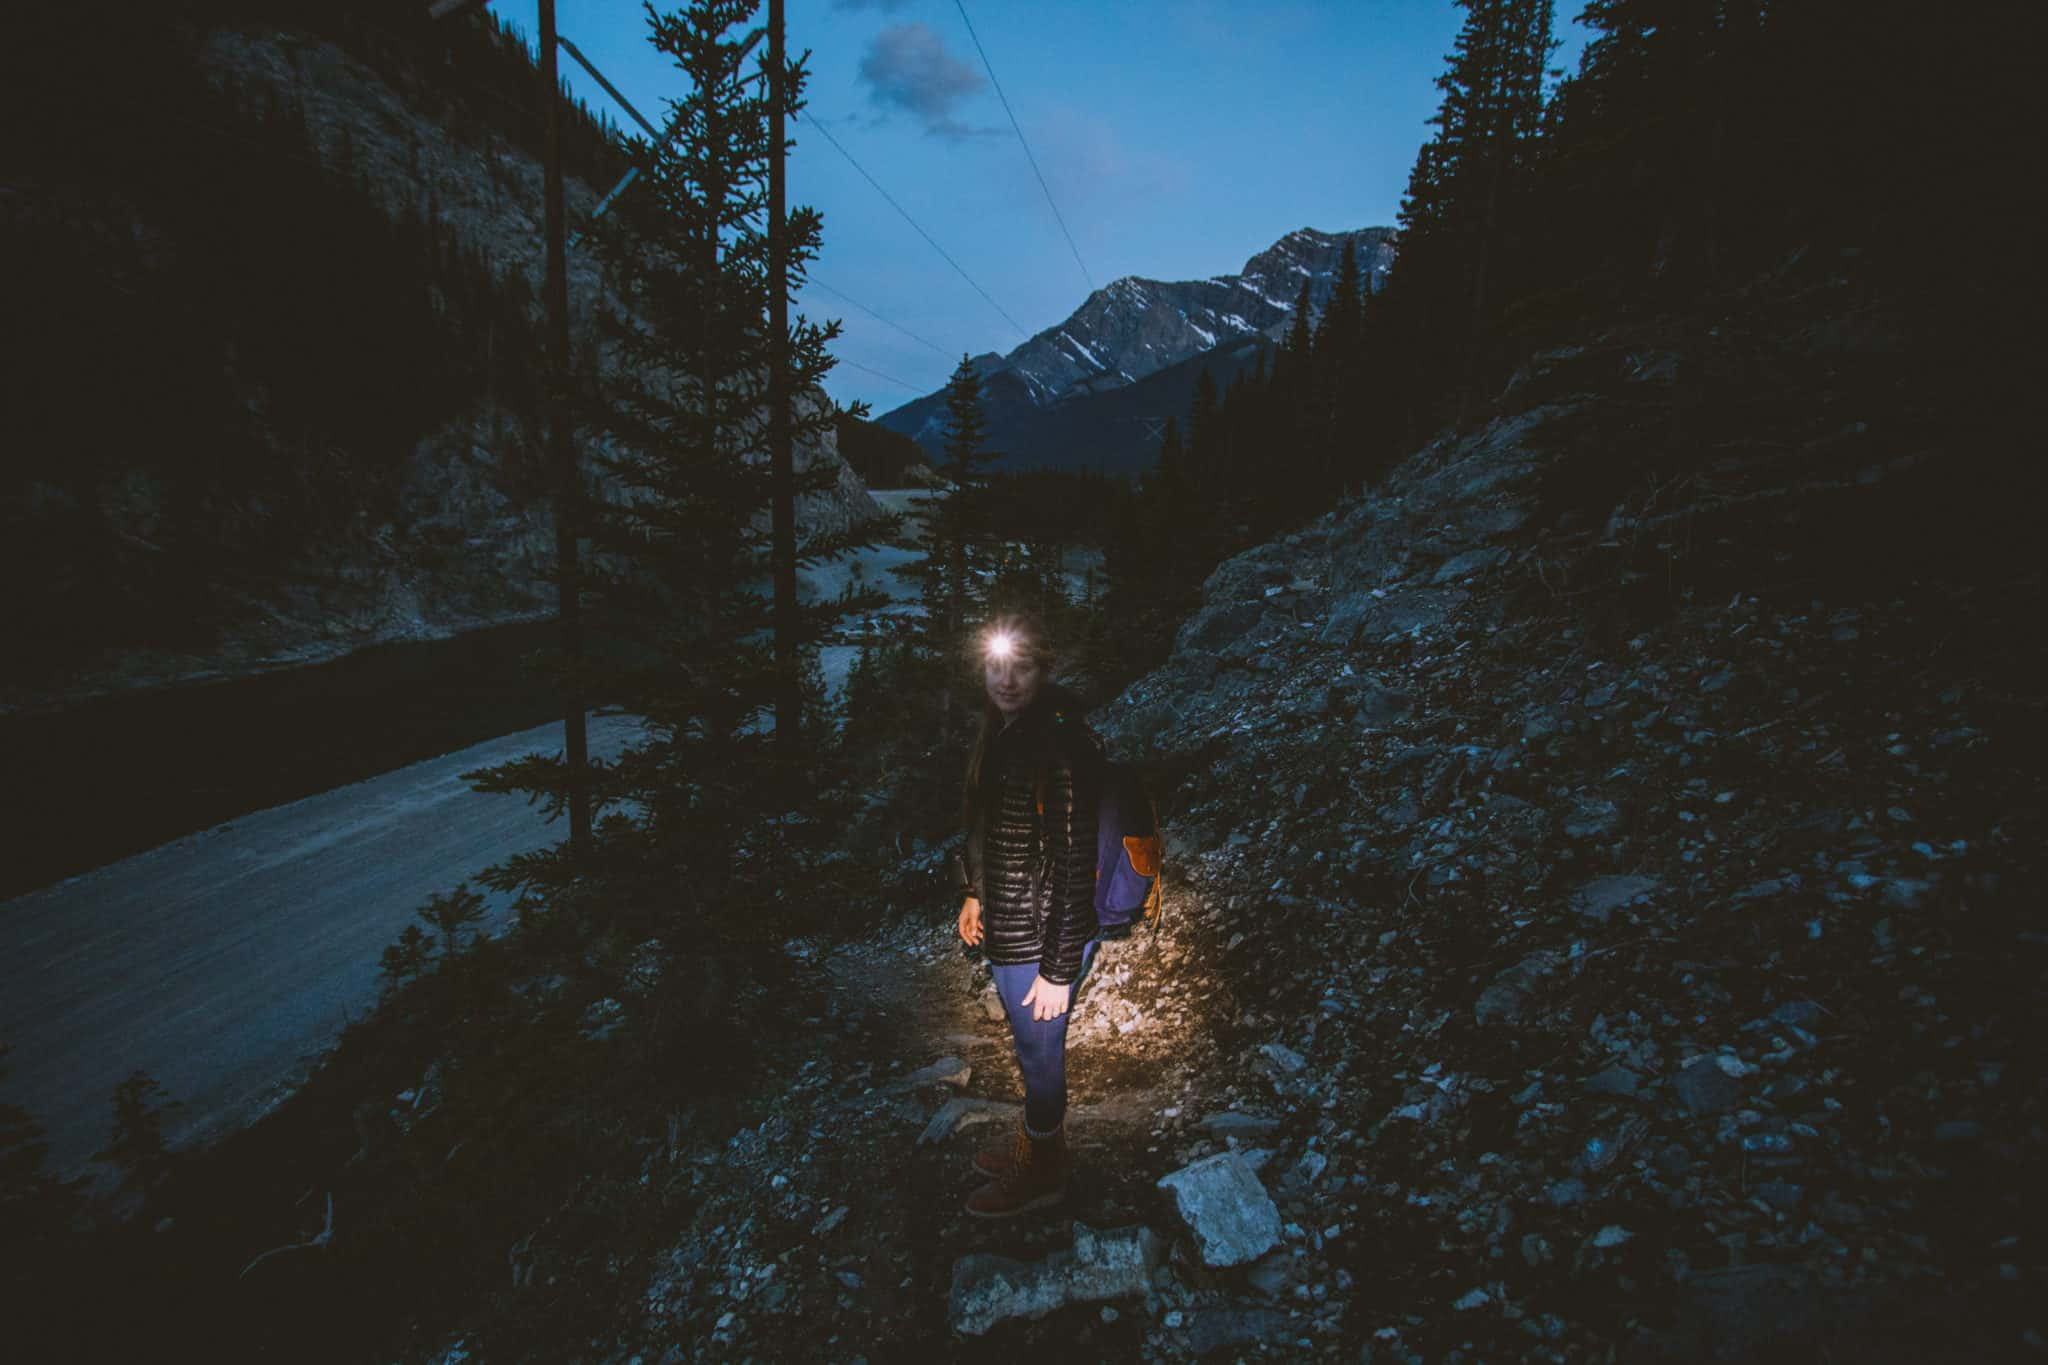 Emily wearing headlamp in the dark, East End of Rundle Hike